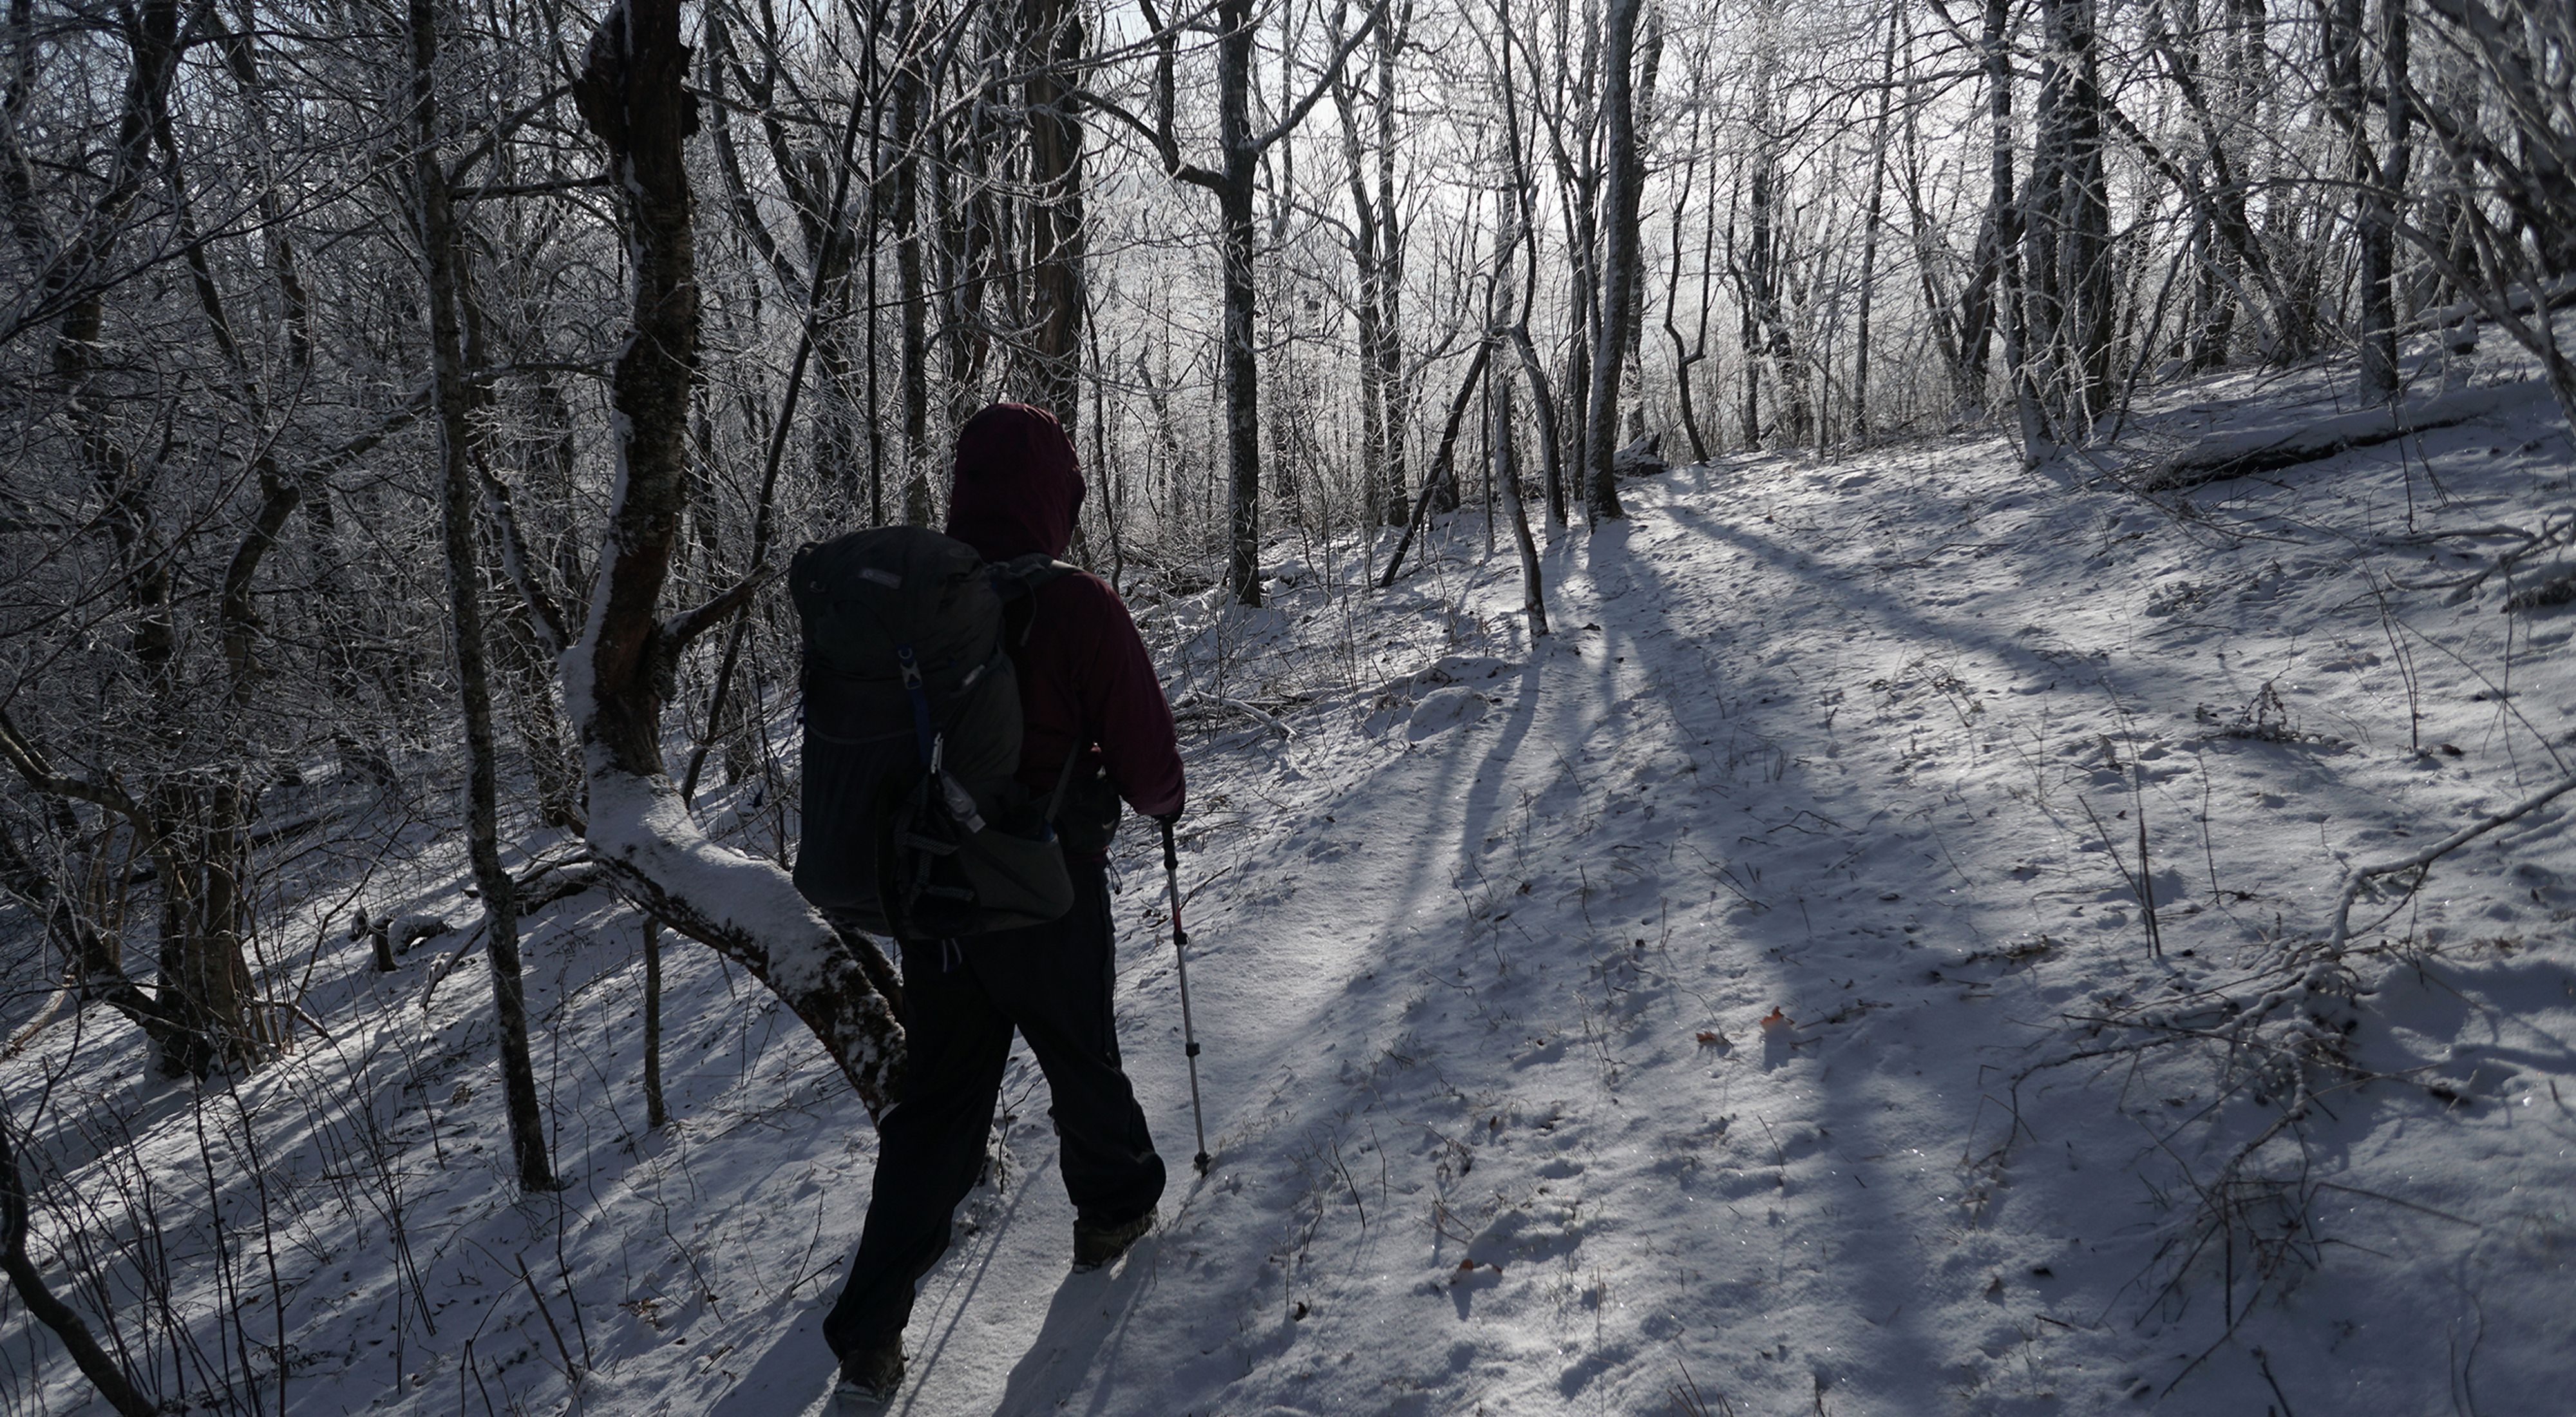 A woman bundled in a heavy parka and carrying a large backpack uses walking sticks to hike a snowy mountain trail.